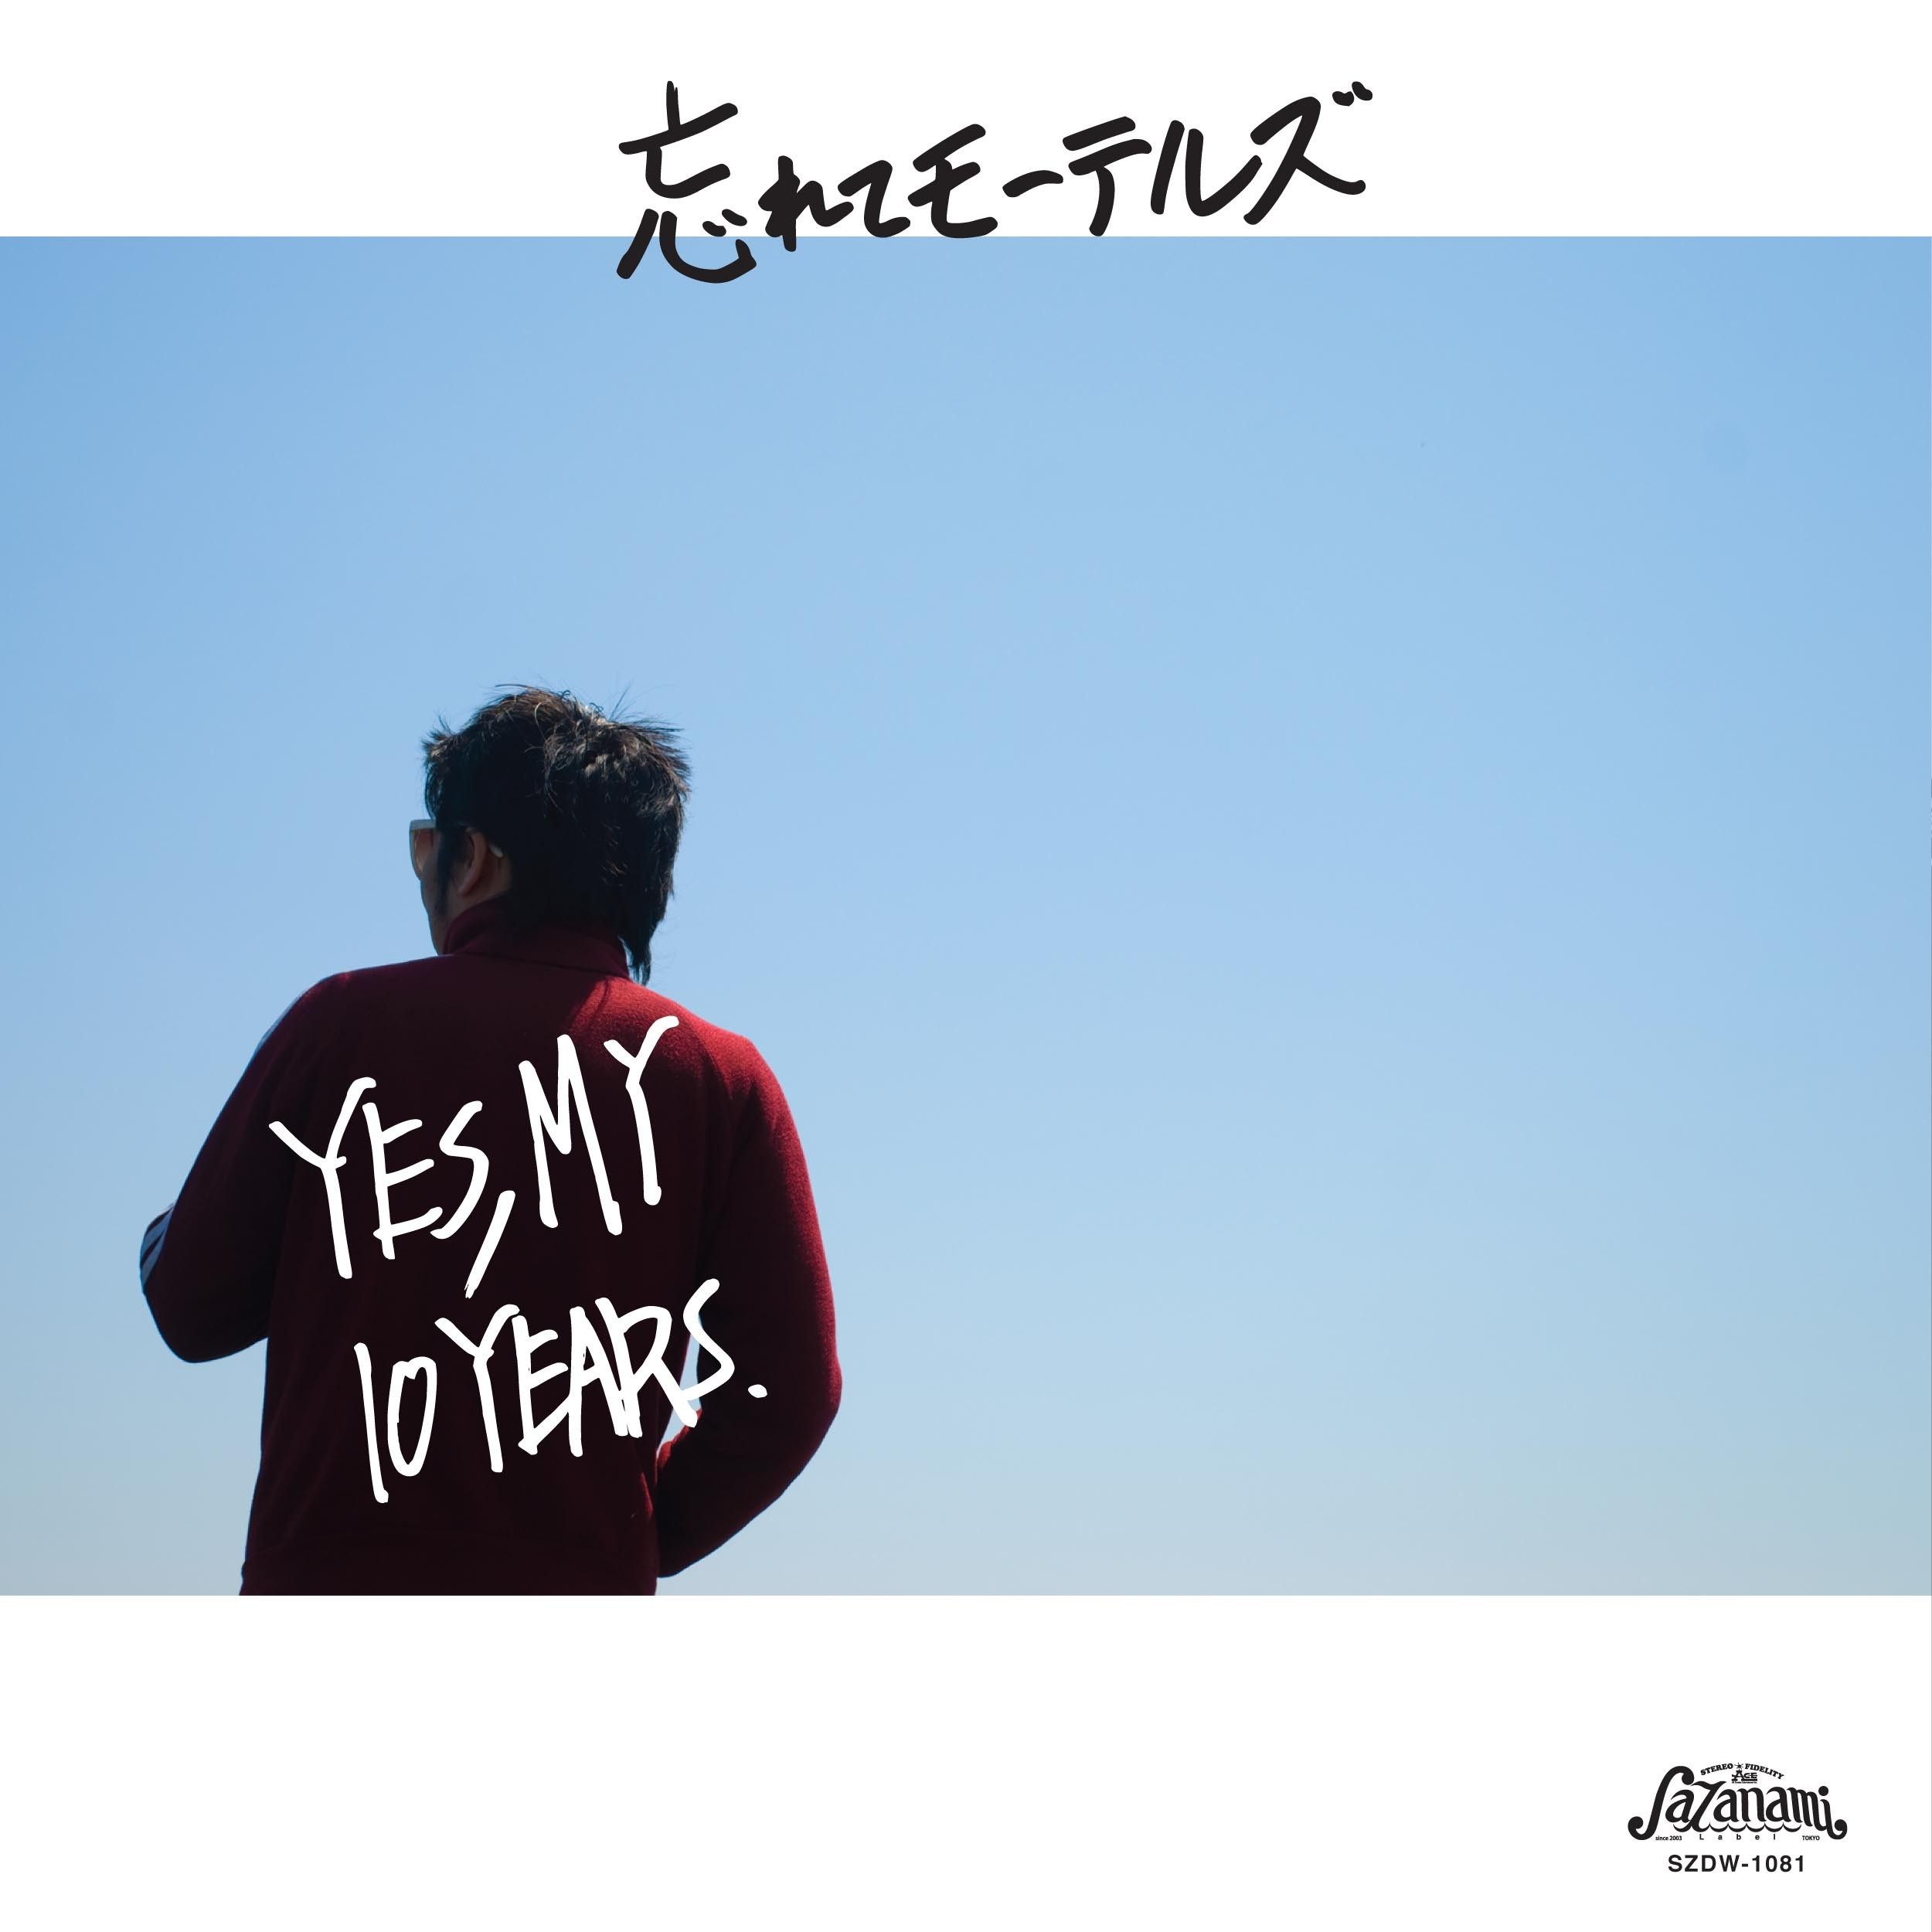 Image of YES, MY 10 YEARS / 忘れてモーテルズ